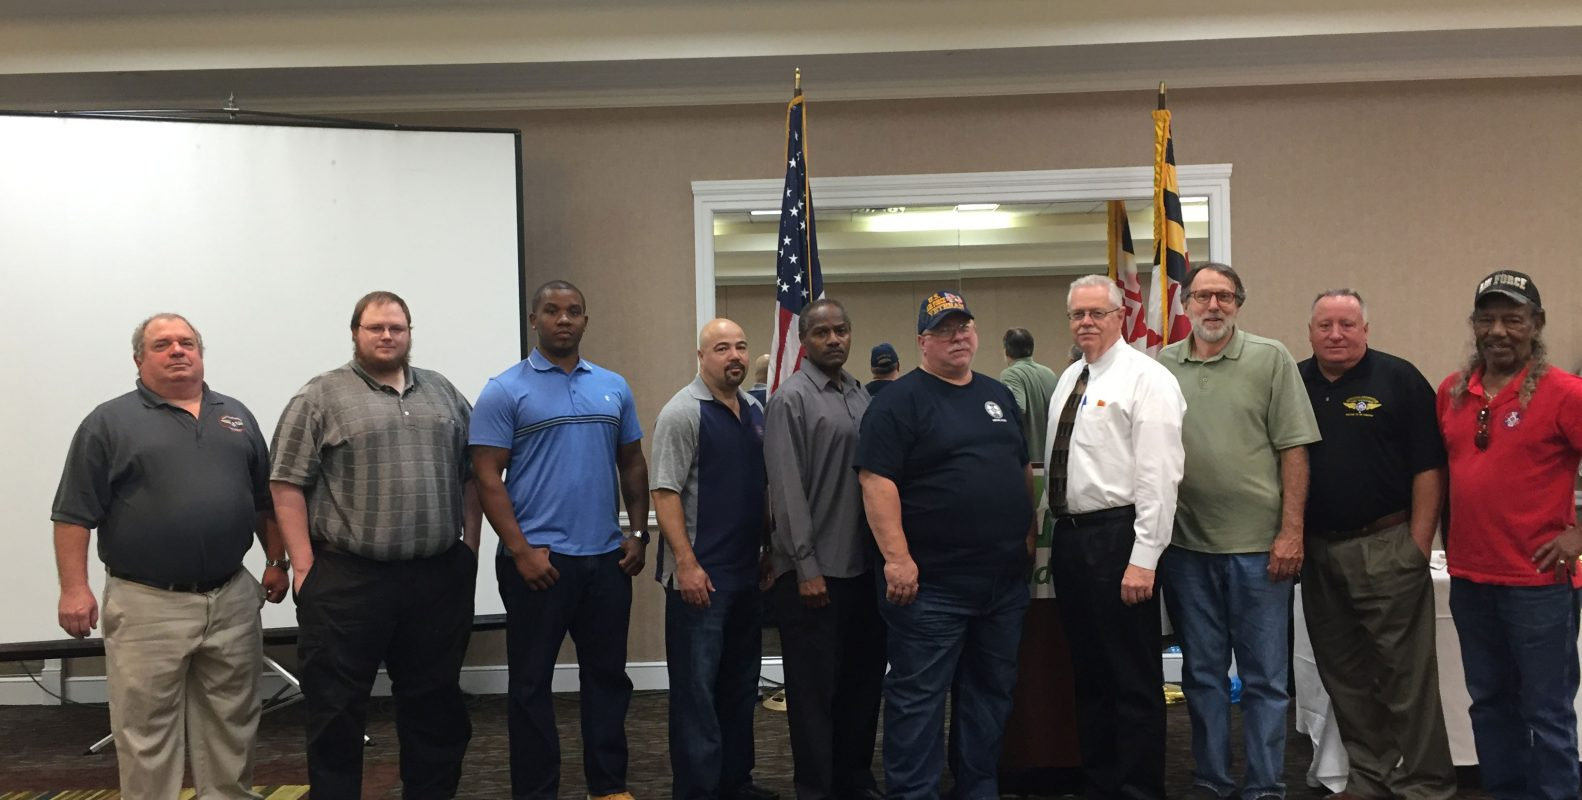 Armed Forces Veterans of the DC-Maryland Council of Machinists